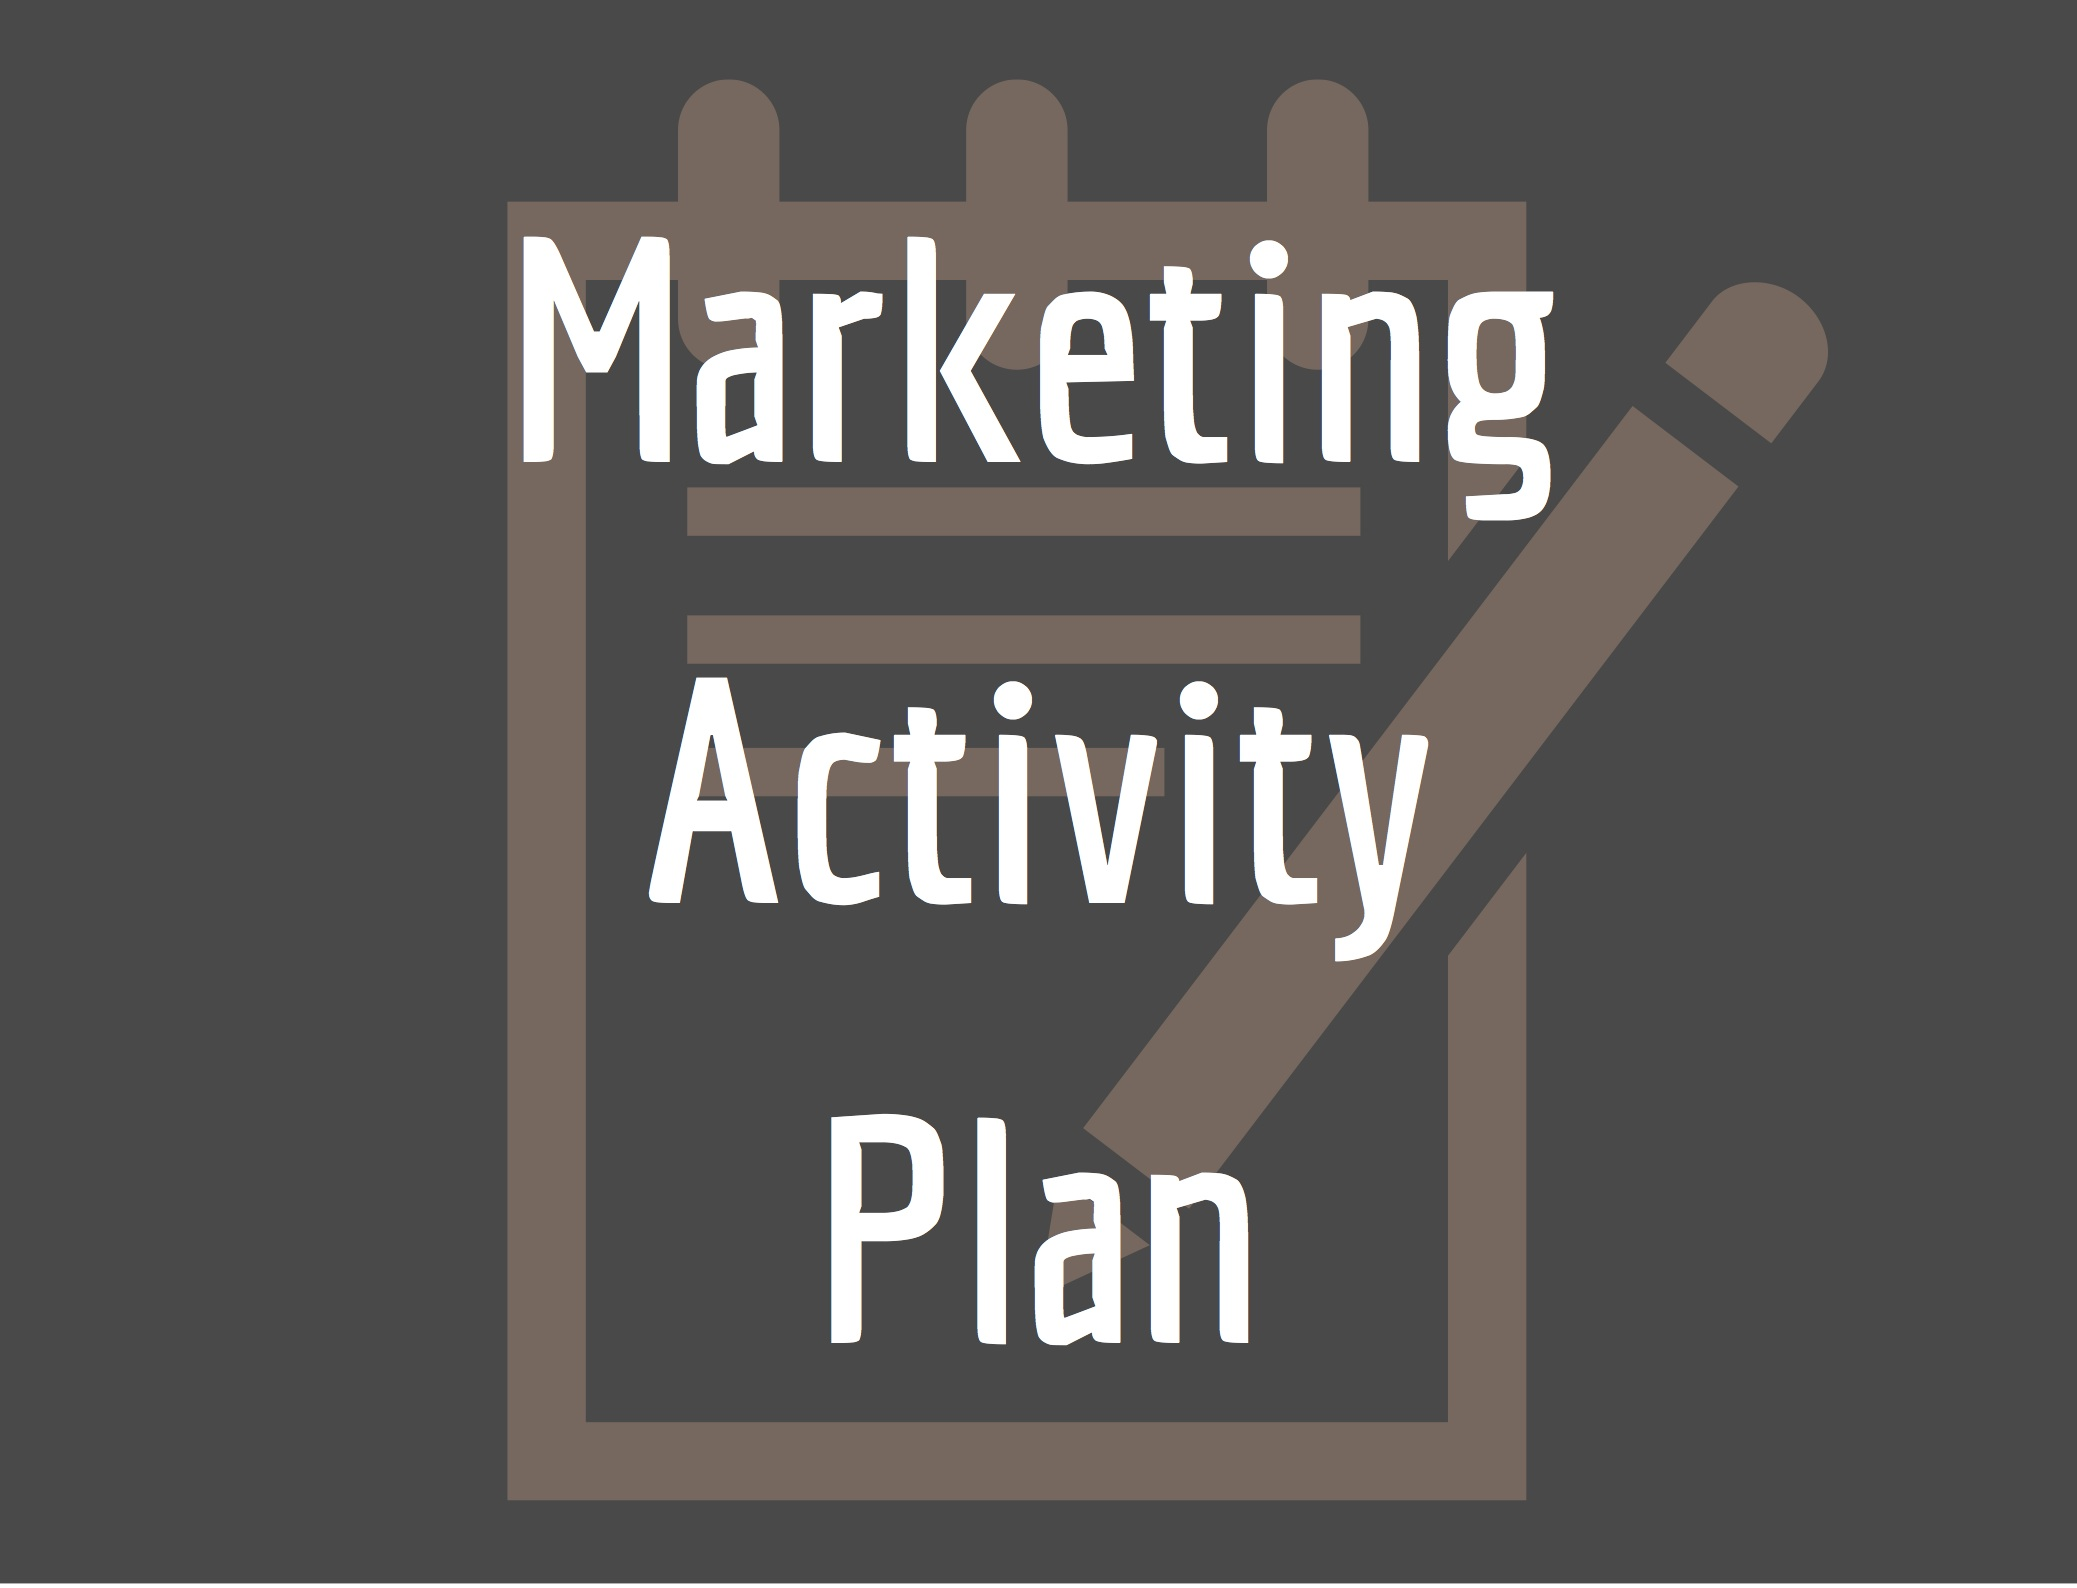 Resources-Marketing-Activity-Plan-Image3.jpg